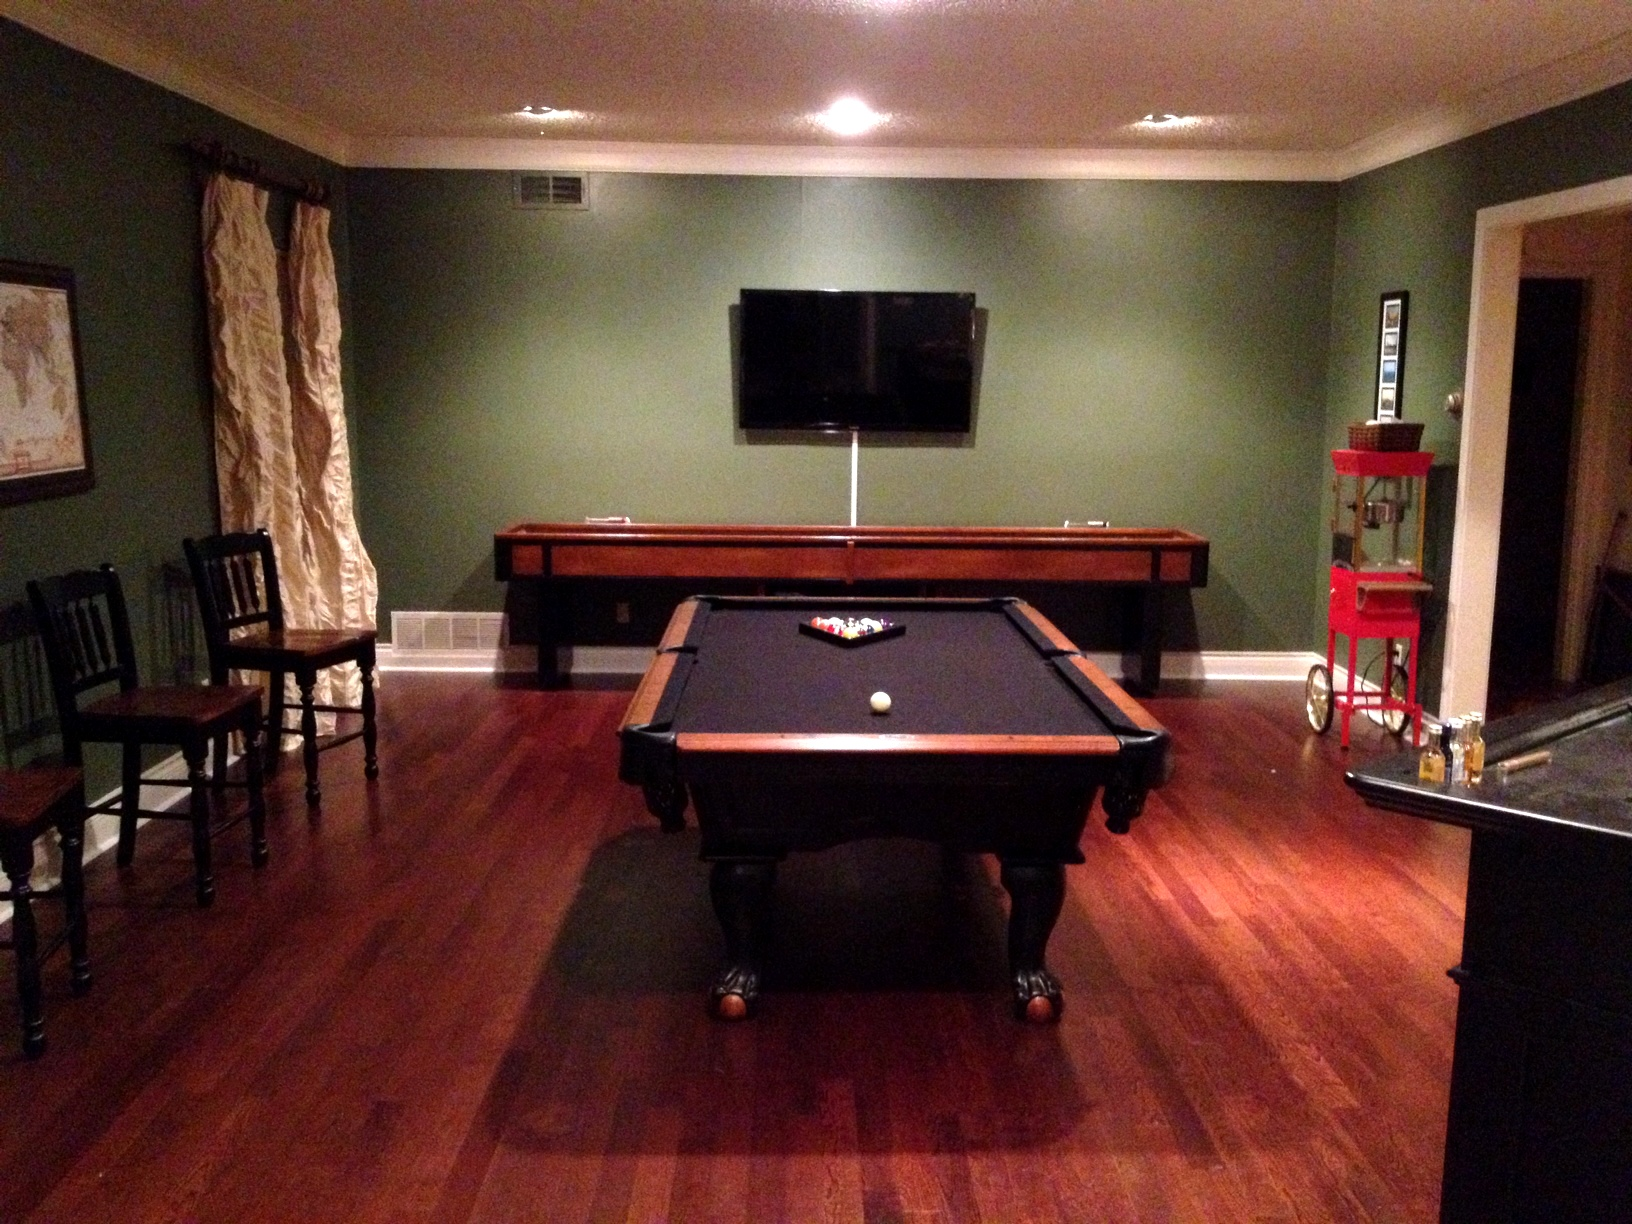 My Favorite Color Is You The Game Room Transformation - Pool table painting